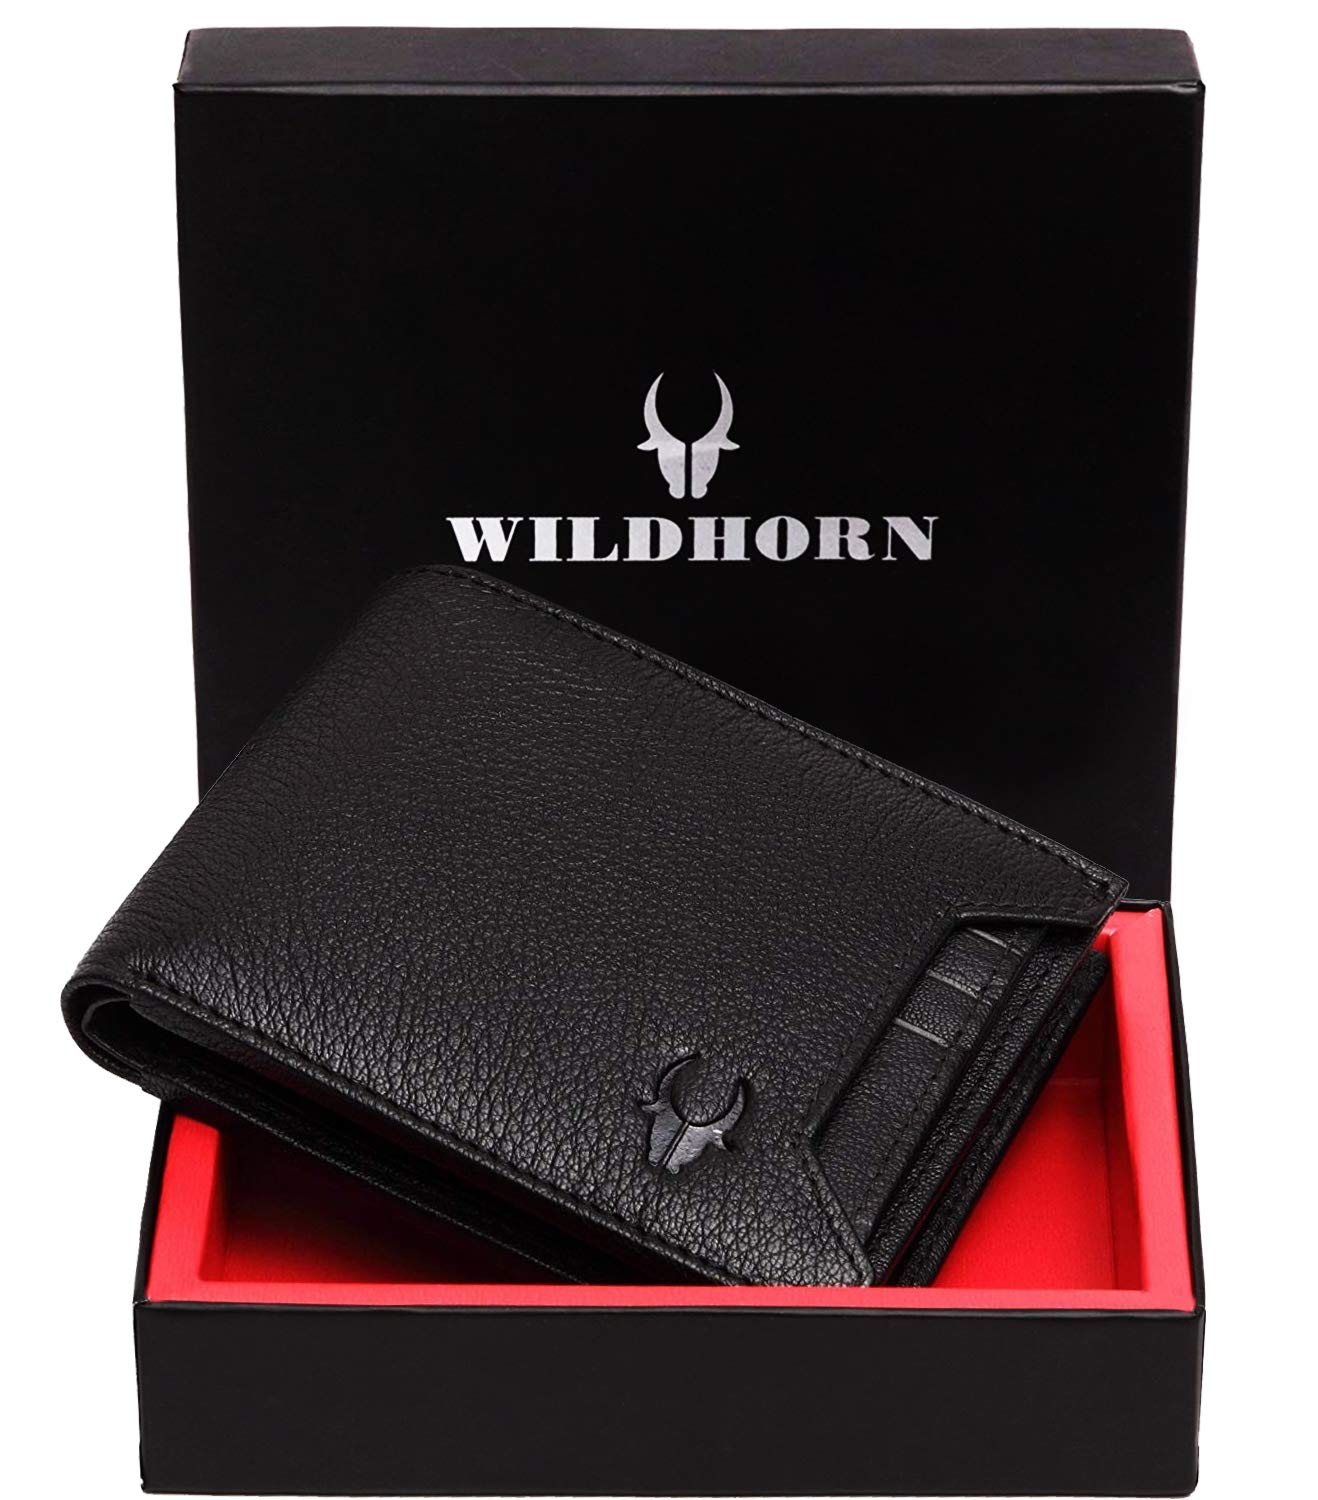 WildHorn Genuine Leather Wallet for Men